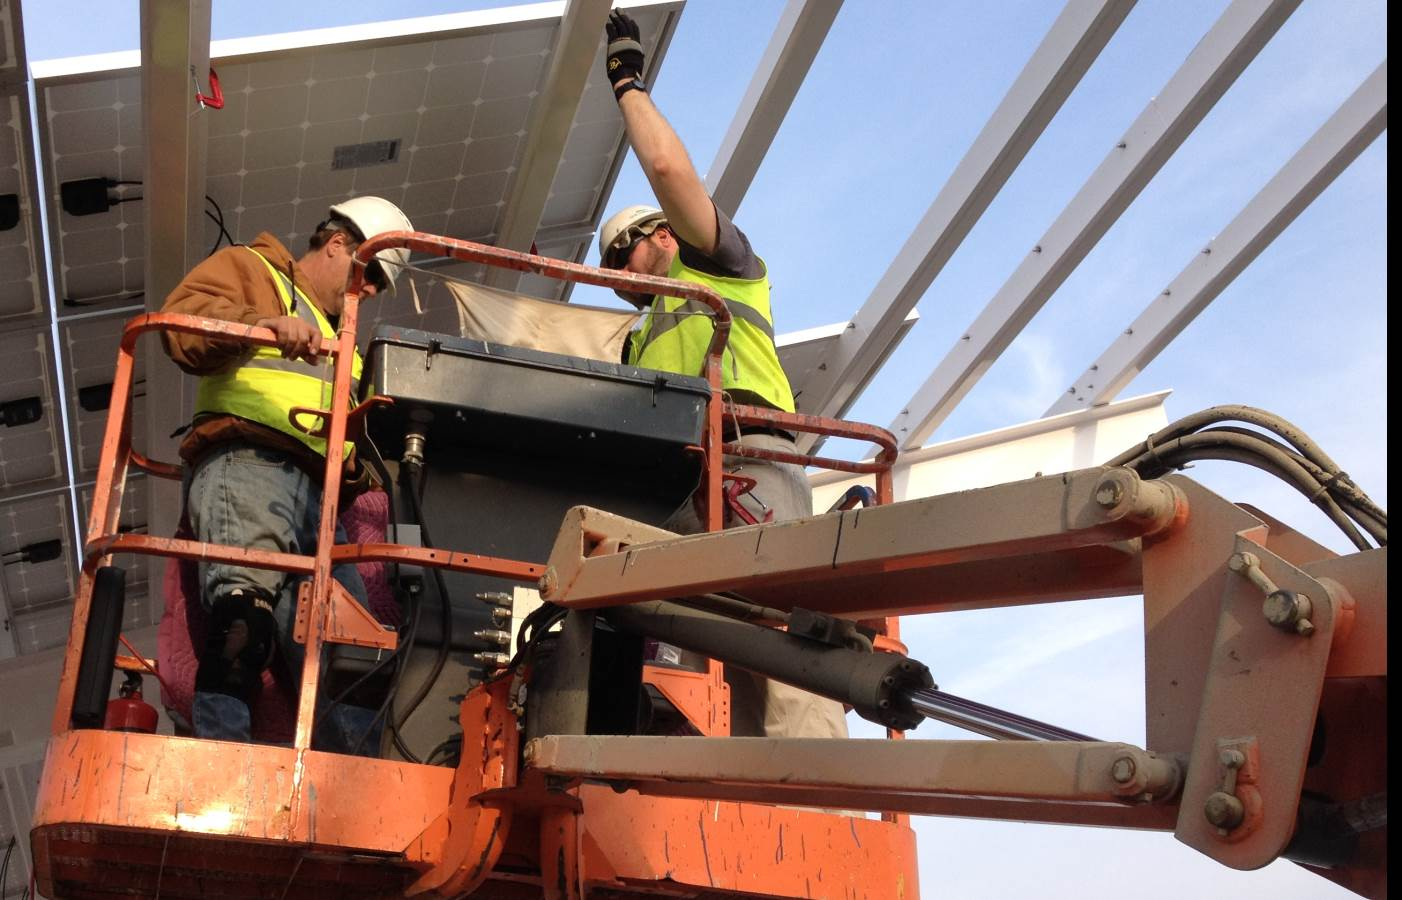 solar panel installation workers on a lift